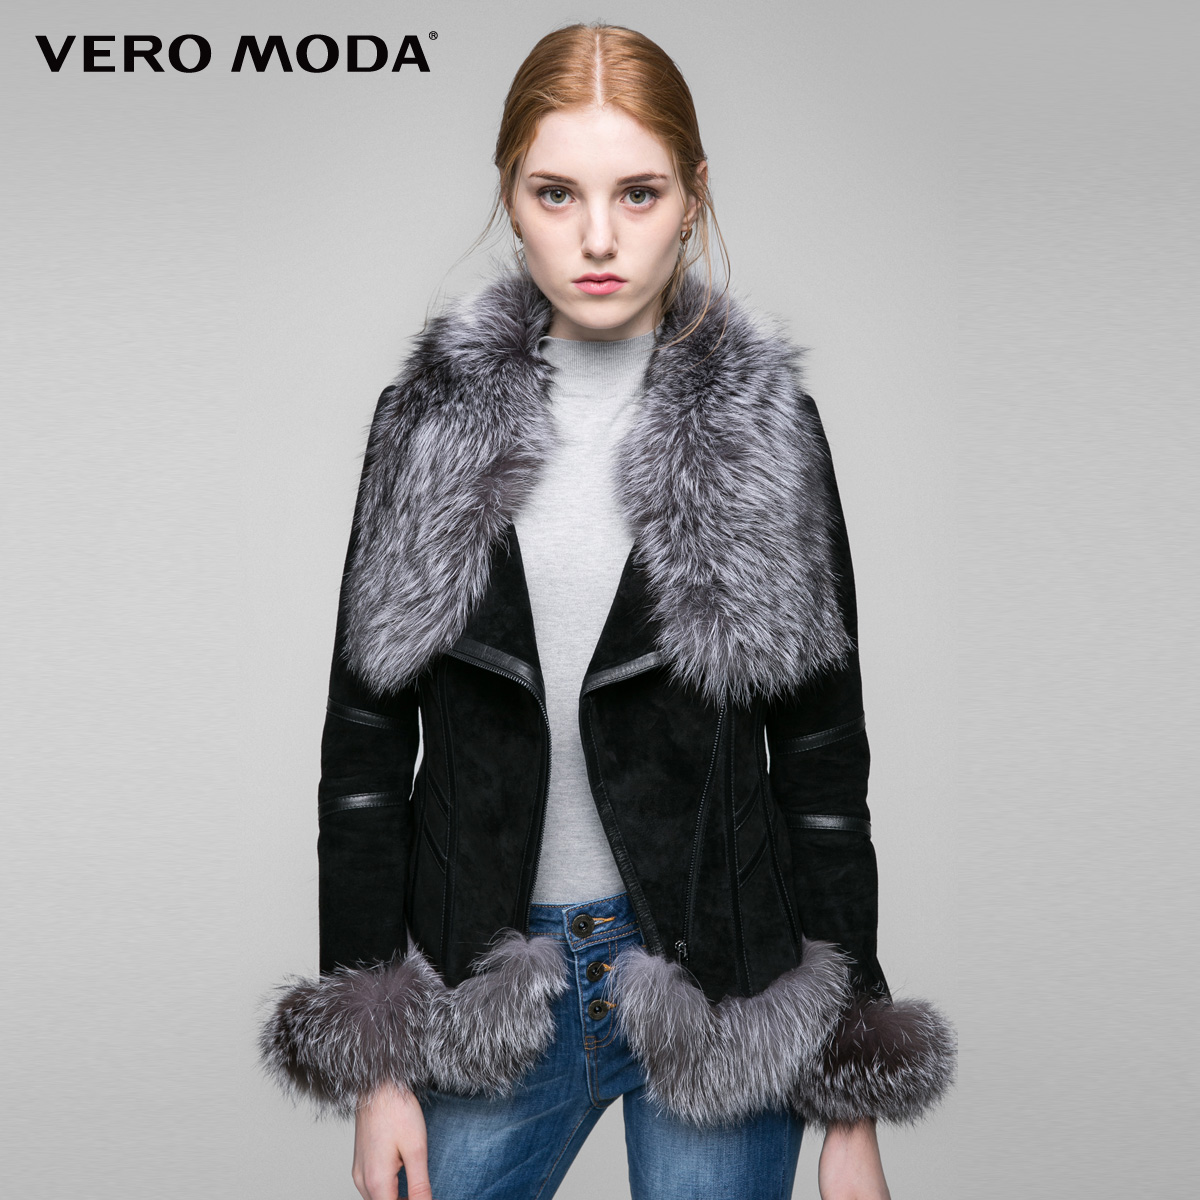 Leather jacket VERO MODA 316428526 VeroModa